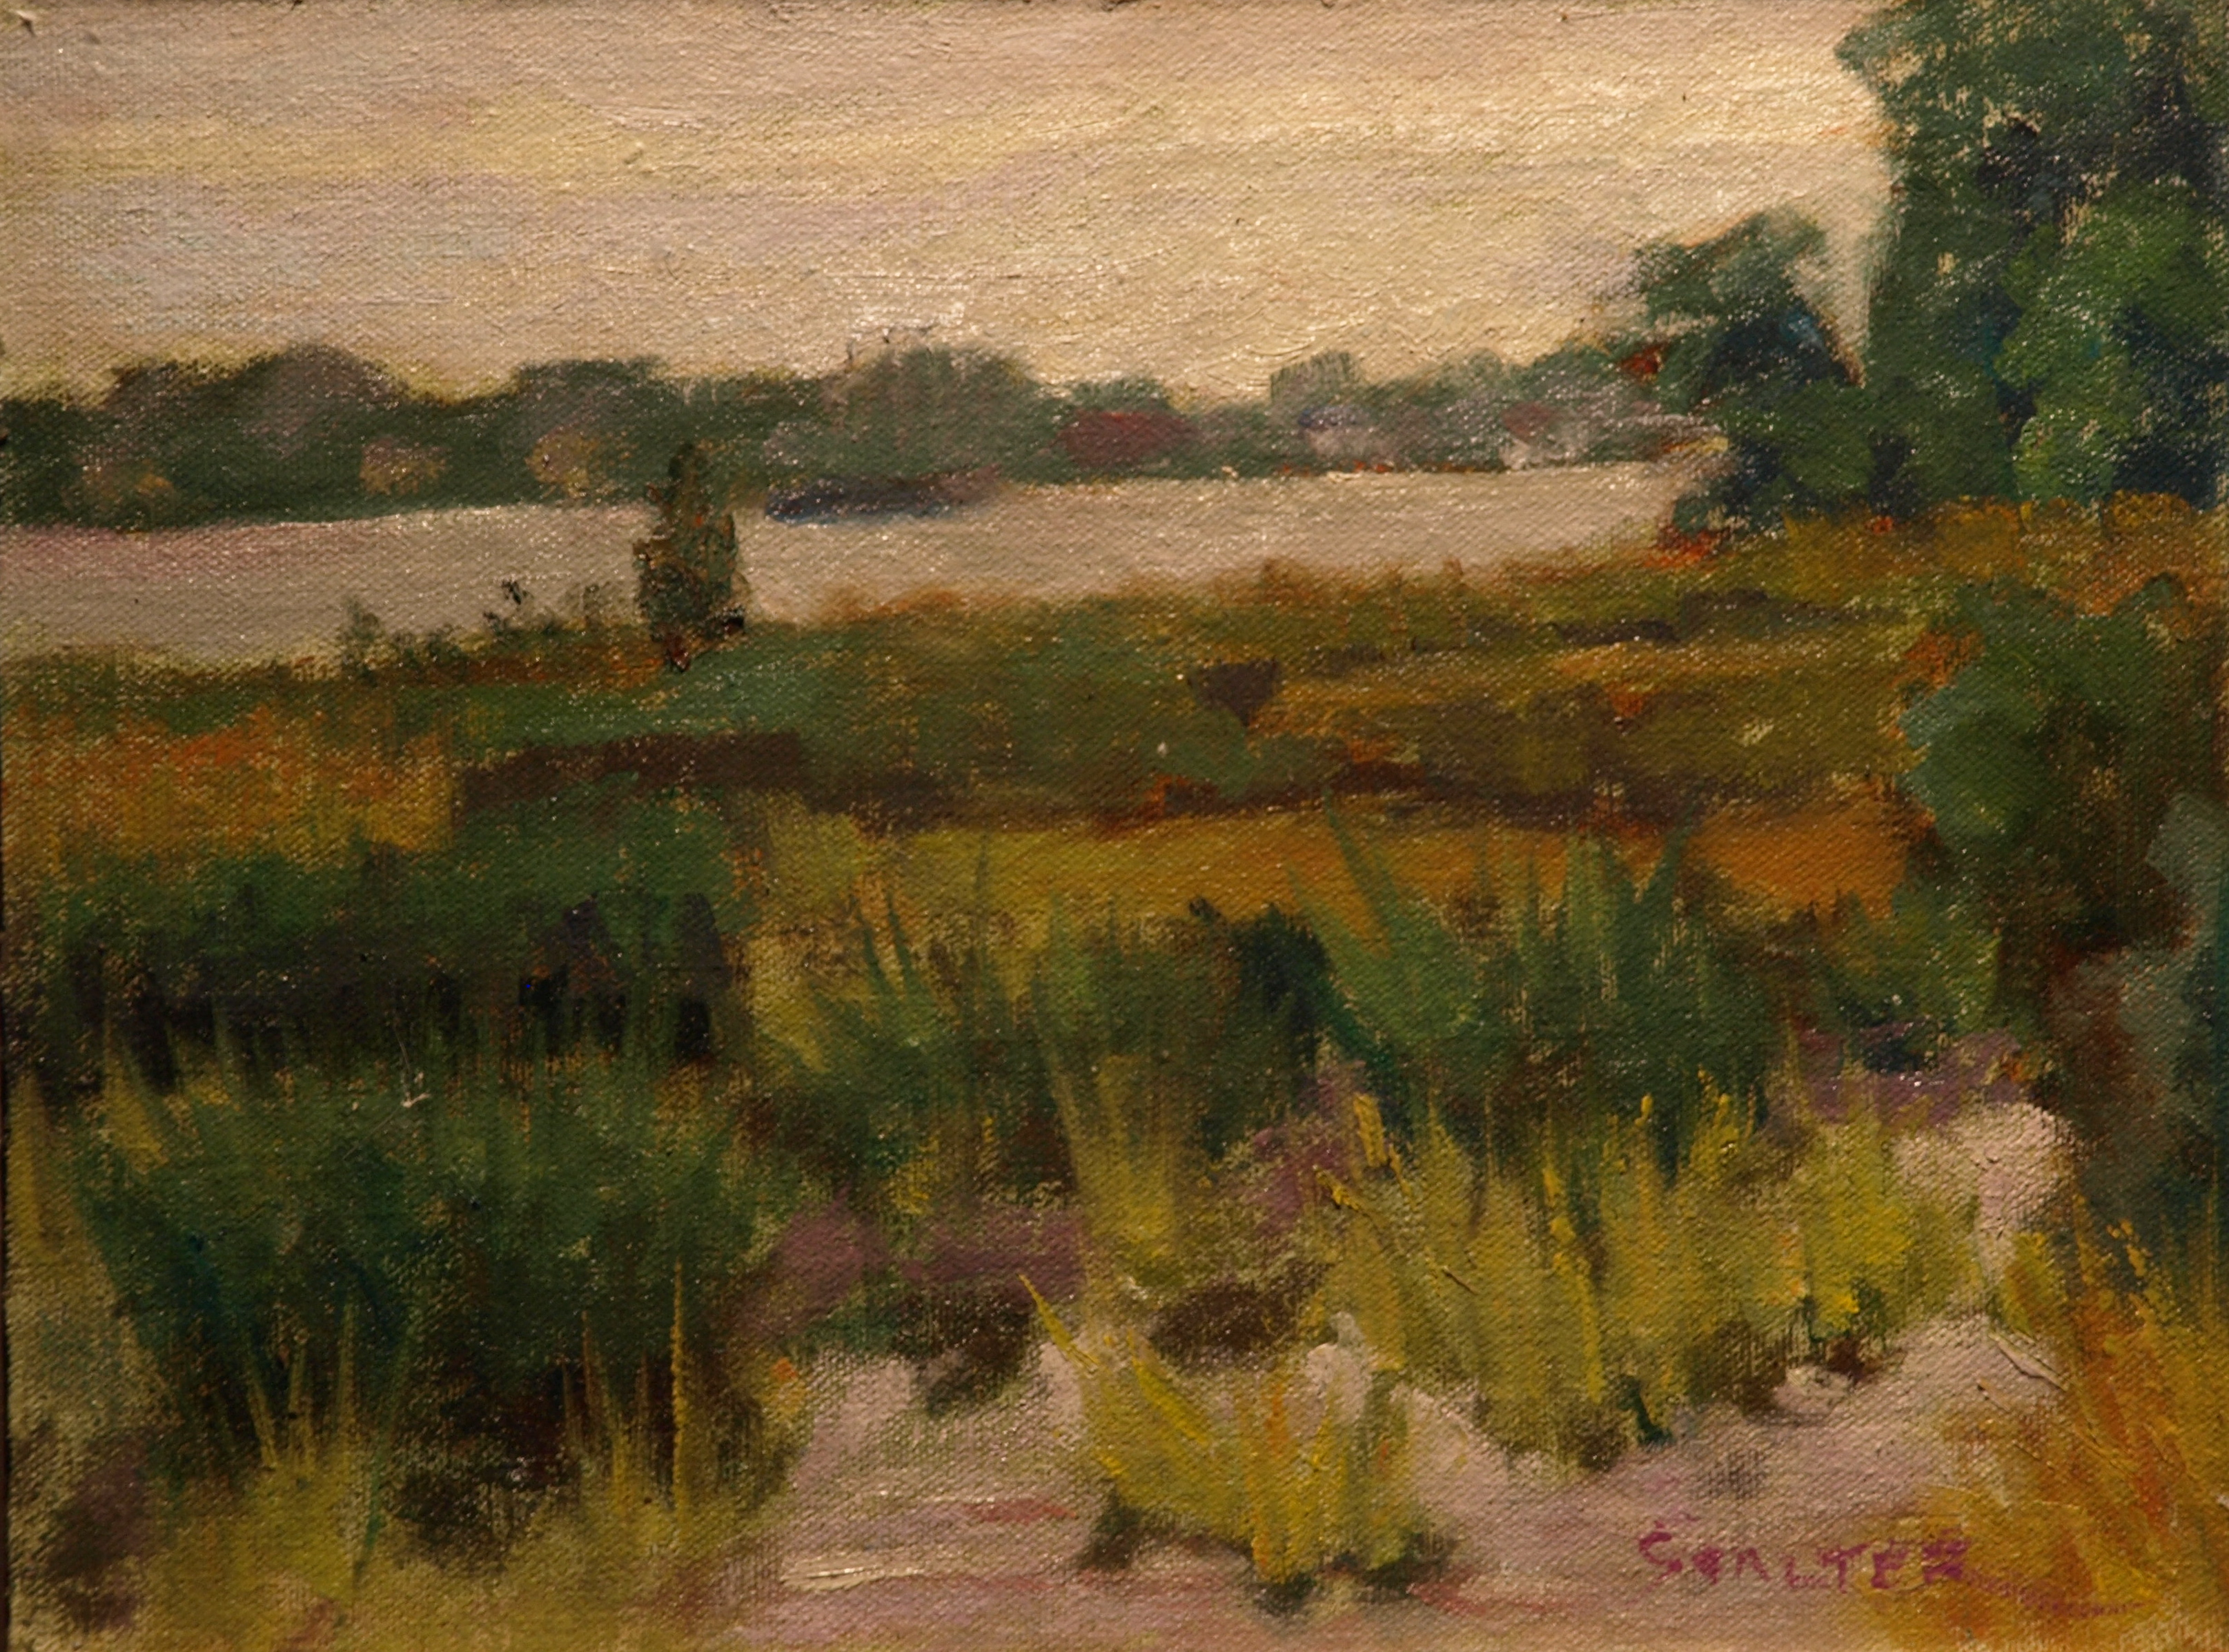 Barn Island Marsh # 2, Oil on Linen on Panel, 9 x 12 Inches, by Richard Stalter, $225